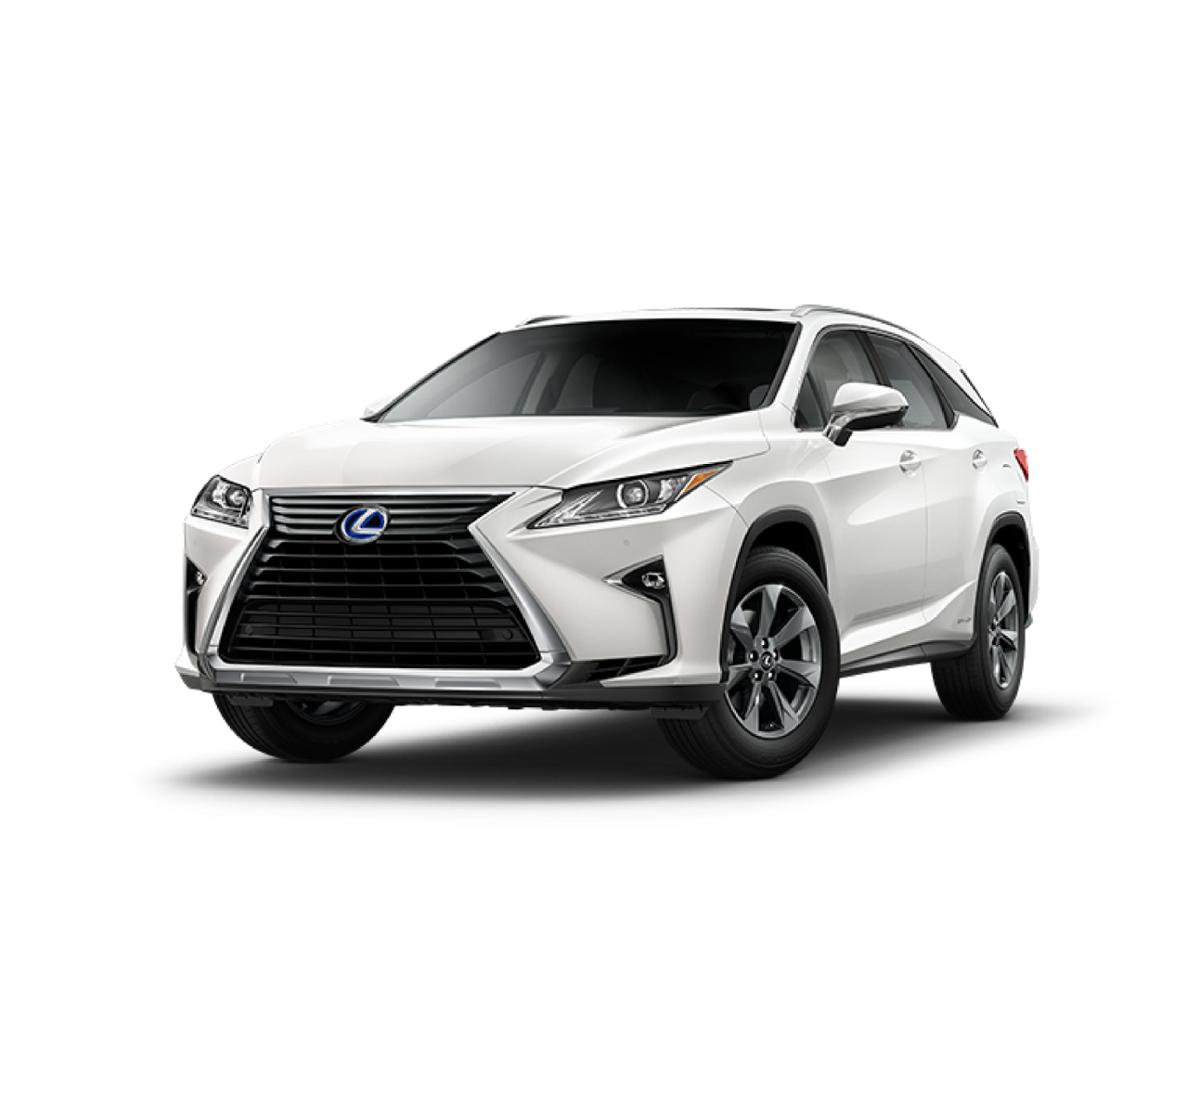 2018 Lexus RX 450hL Vehicle Photo in Houston, TX 77074